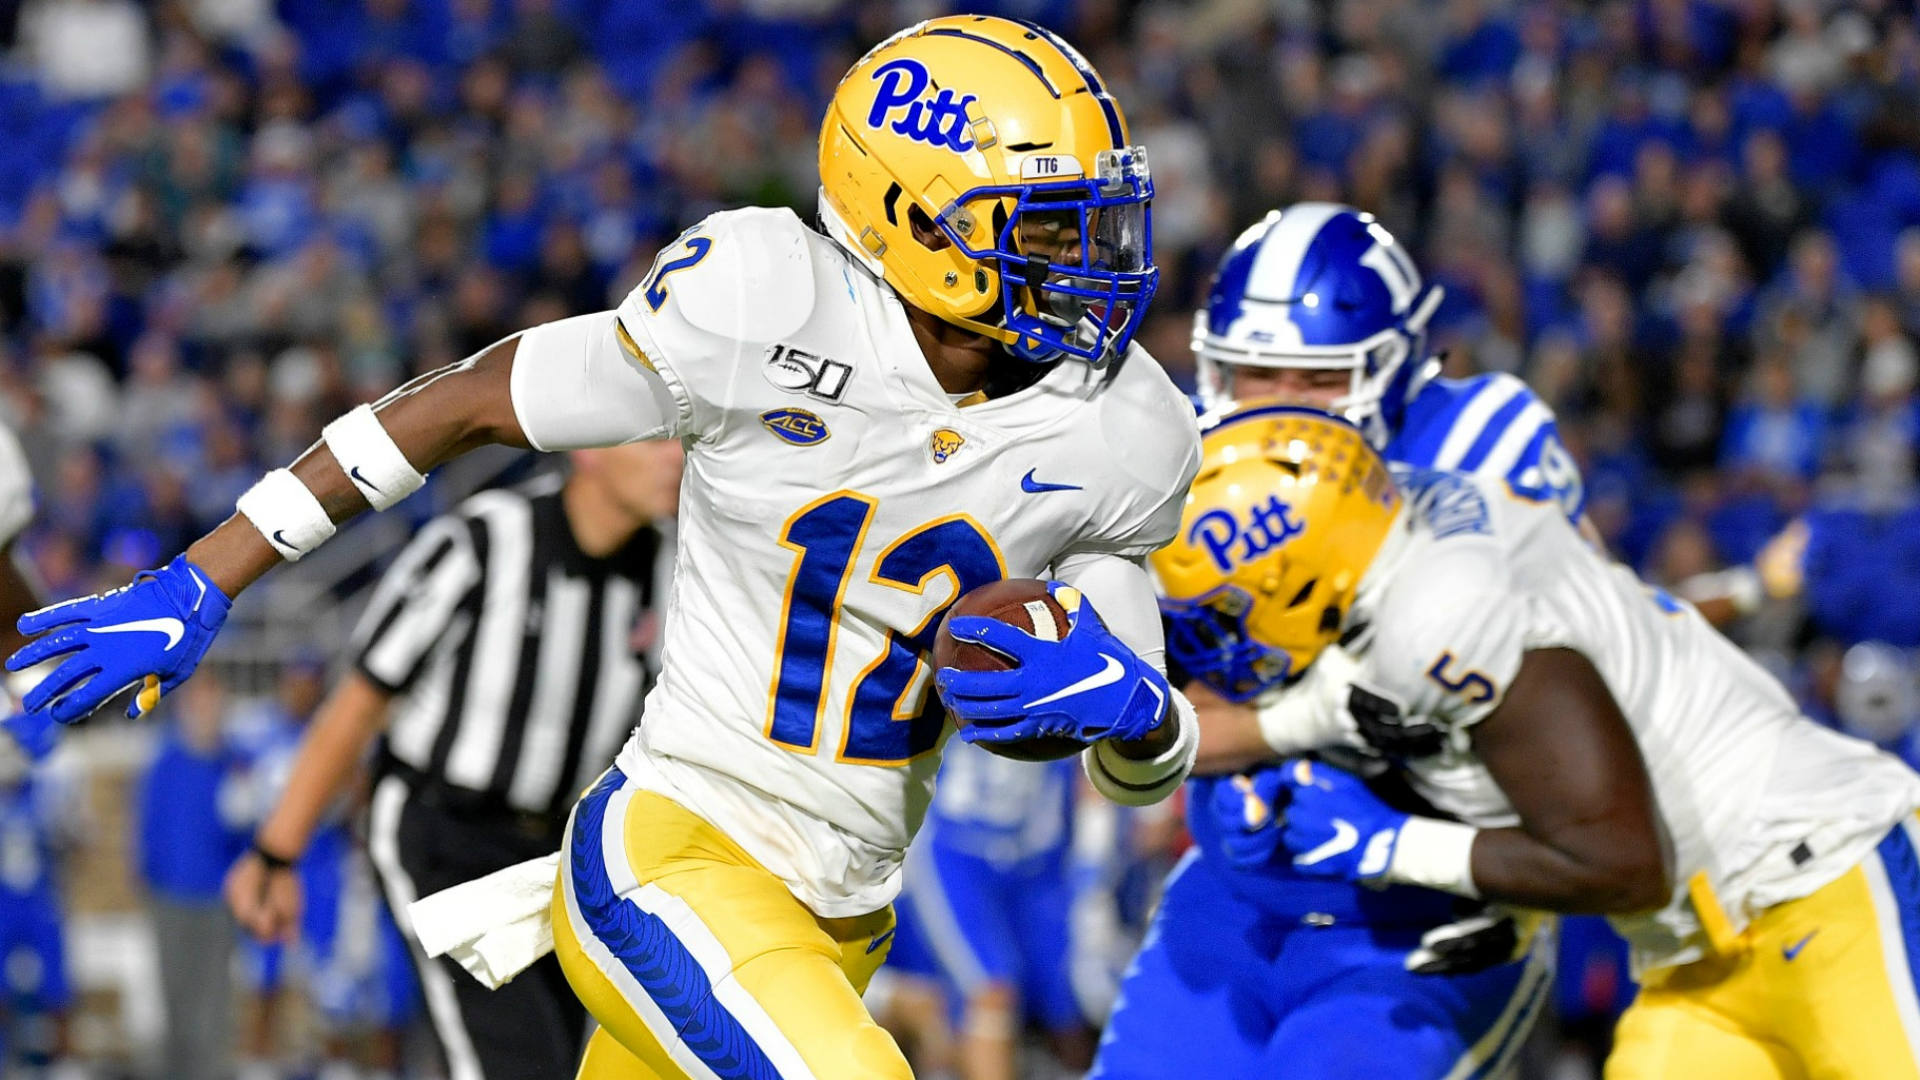 With star safety Paris Ford departing the Pitt Panthers, let's opt to call this what it is